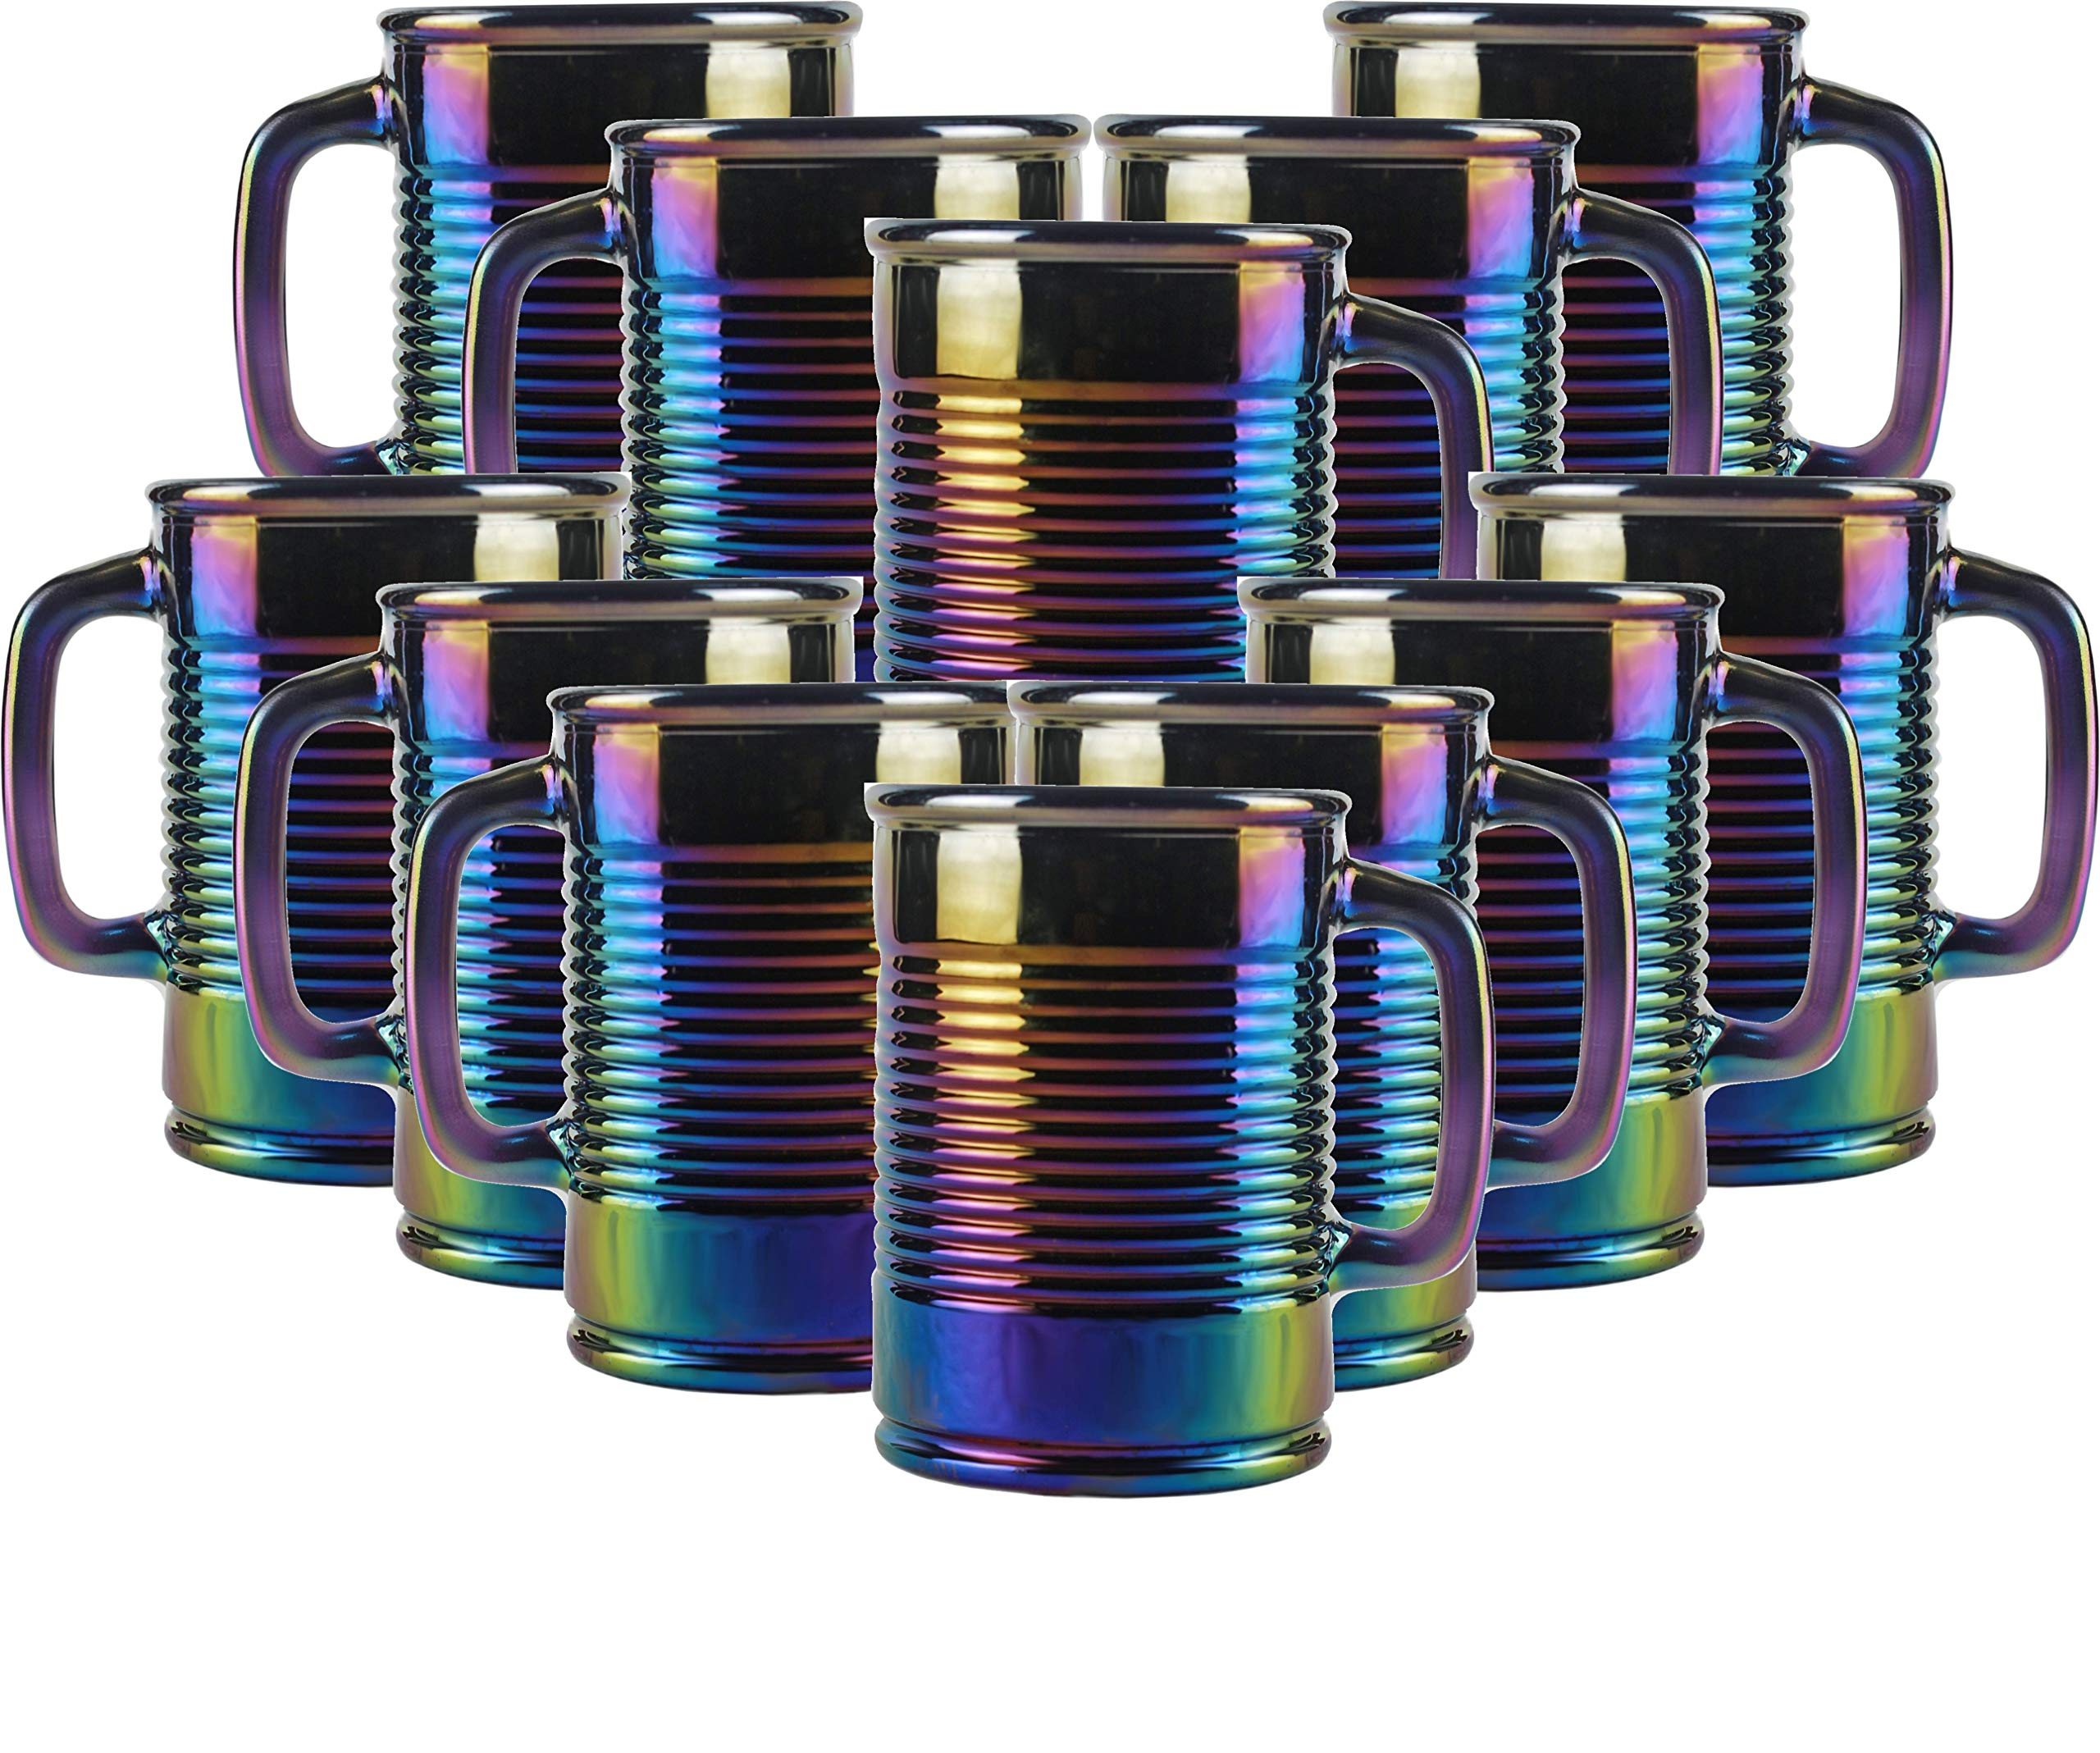 Circleware Huge 12-Piece Set of Mason Jar Mugs in Fun Can Shaped Glasses, Home and Kitchen Farmhouse Glassware Décor Drink Tumblers for Water, Beer, Whiskey and Cold Beverages, 17.5 oz, Rainbow